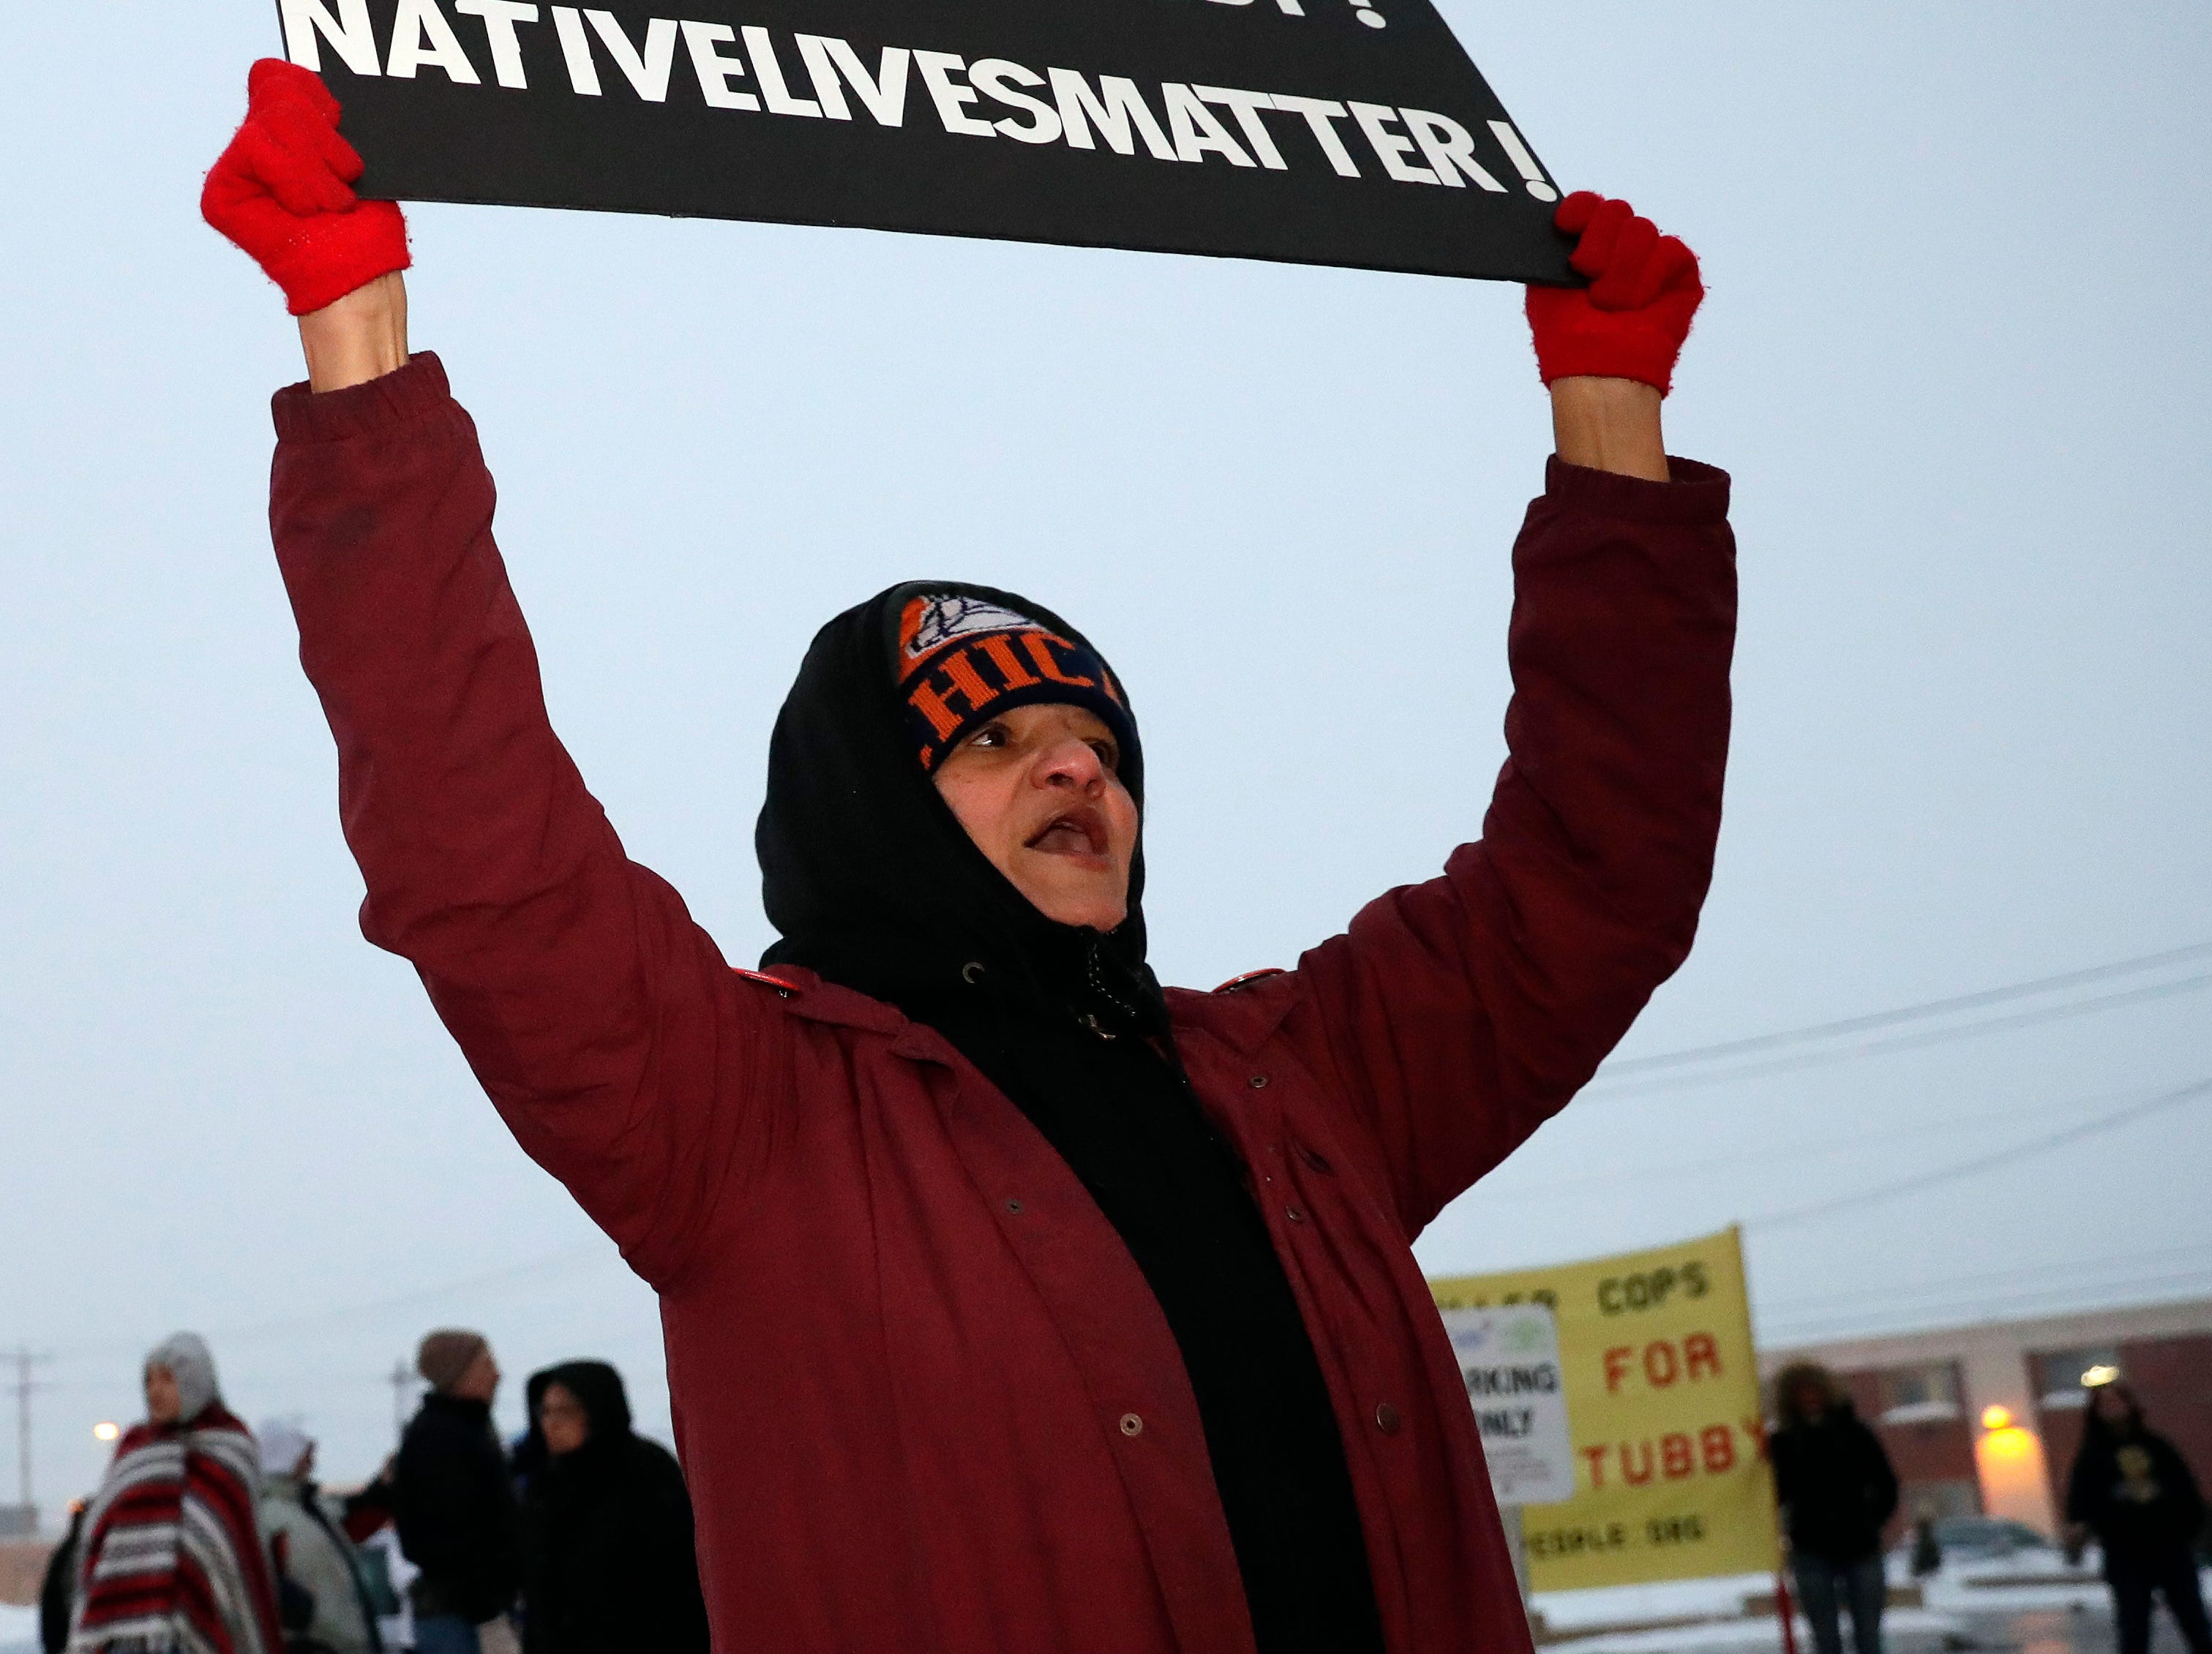 Stacy Grignon of Green Bay protests across the street from the Green Bay Police Department on Feb. 2, 2019 after the announcement made by District Attorney David Lasee that Officer Erik O'Brien's actions were legal when he shot Jonathon Tubby on Oct. 19, 2018. Sarah Kloepping/USA TODAY NETWORK-Wisconsin